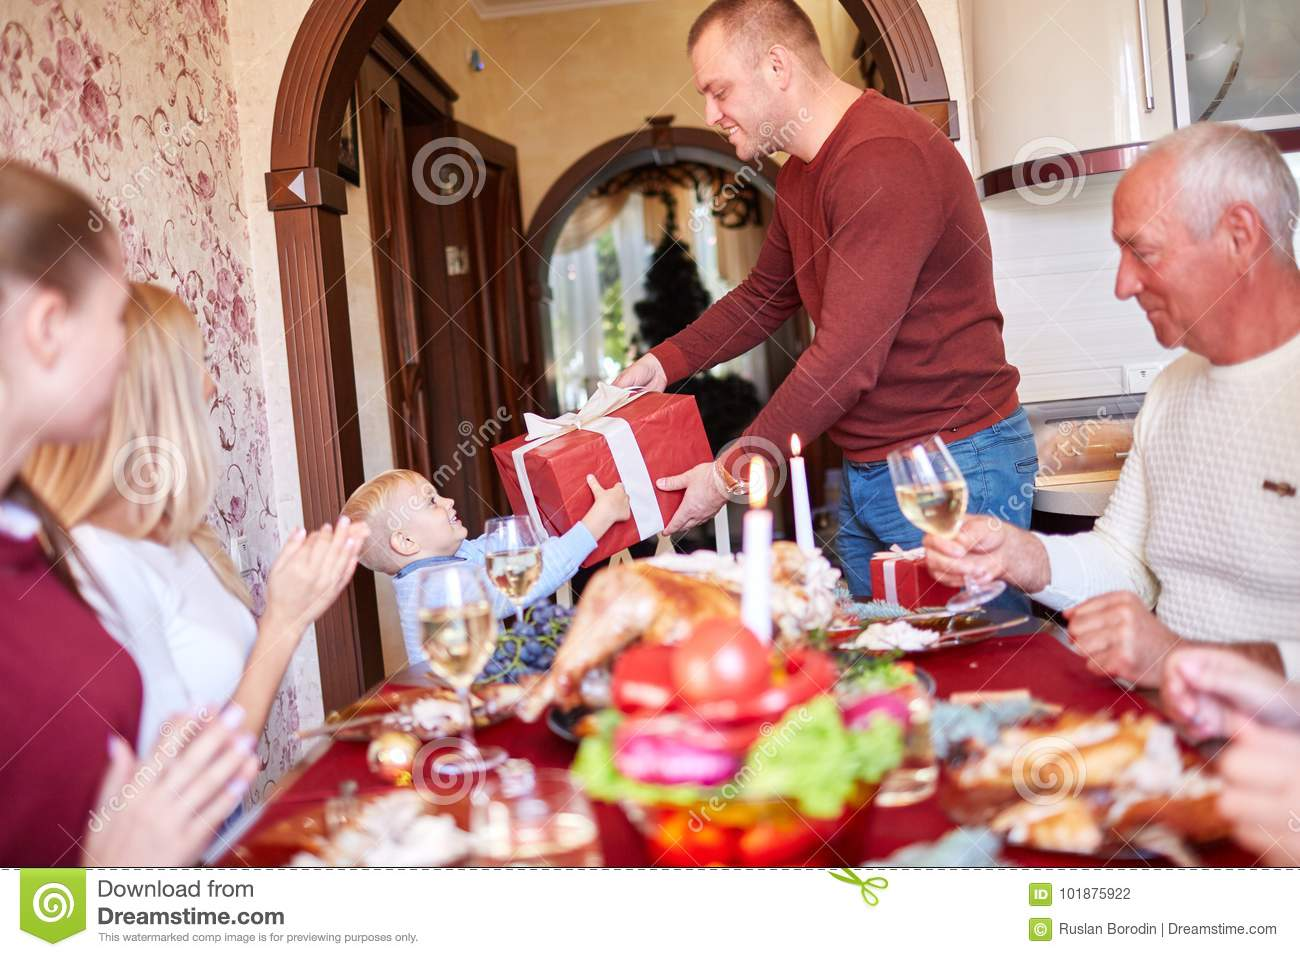 Dad giving a red gift to little son on a festivebackground. Family Christmas presents concept.